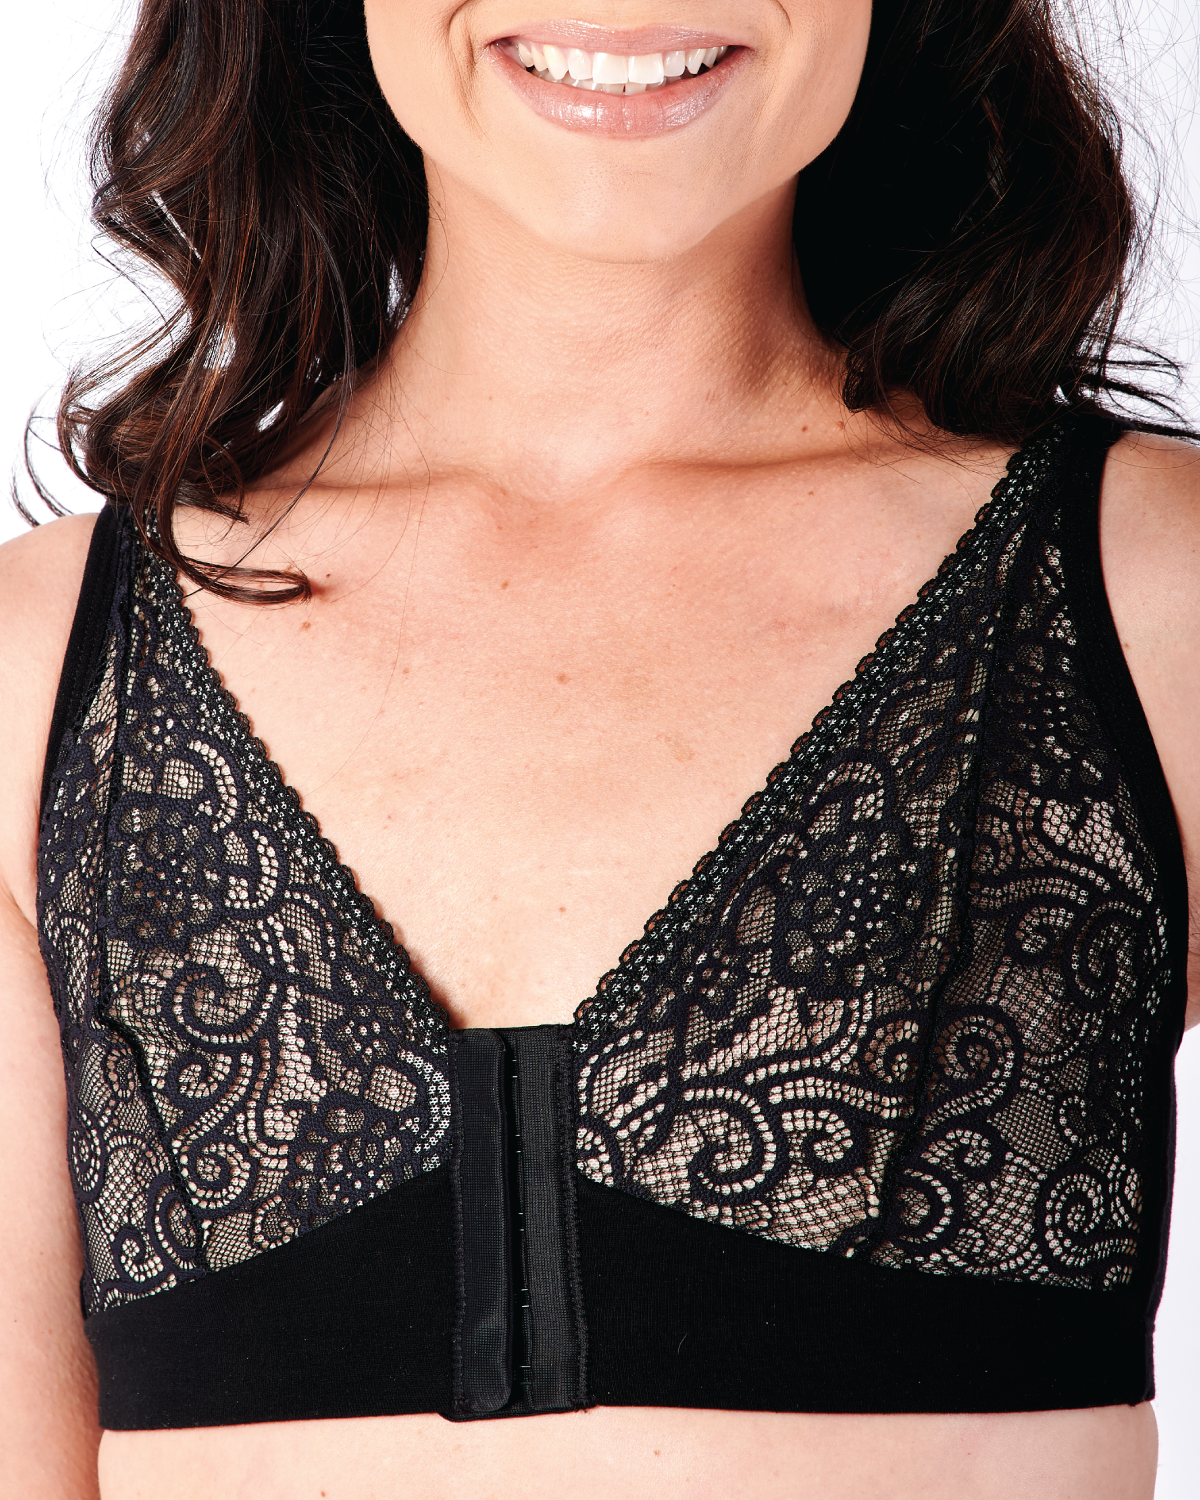 Black, pocketed front closure lace bra made with soft modal, dual adjustable back straps and underwire free cups on a flat chested model.